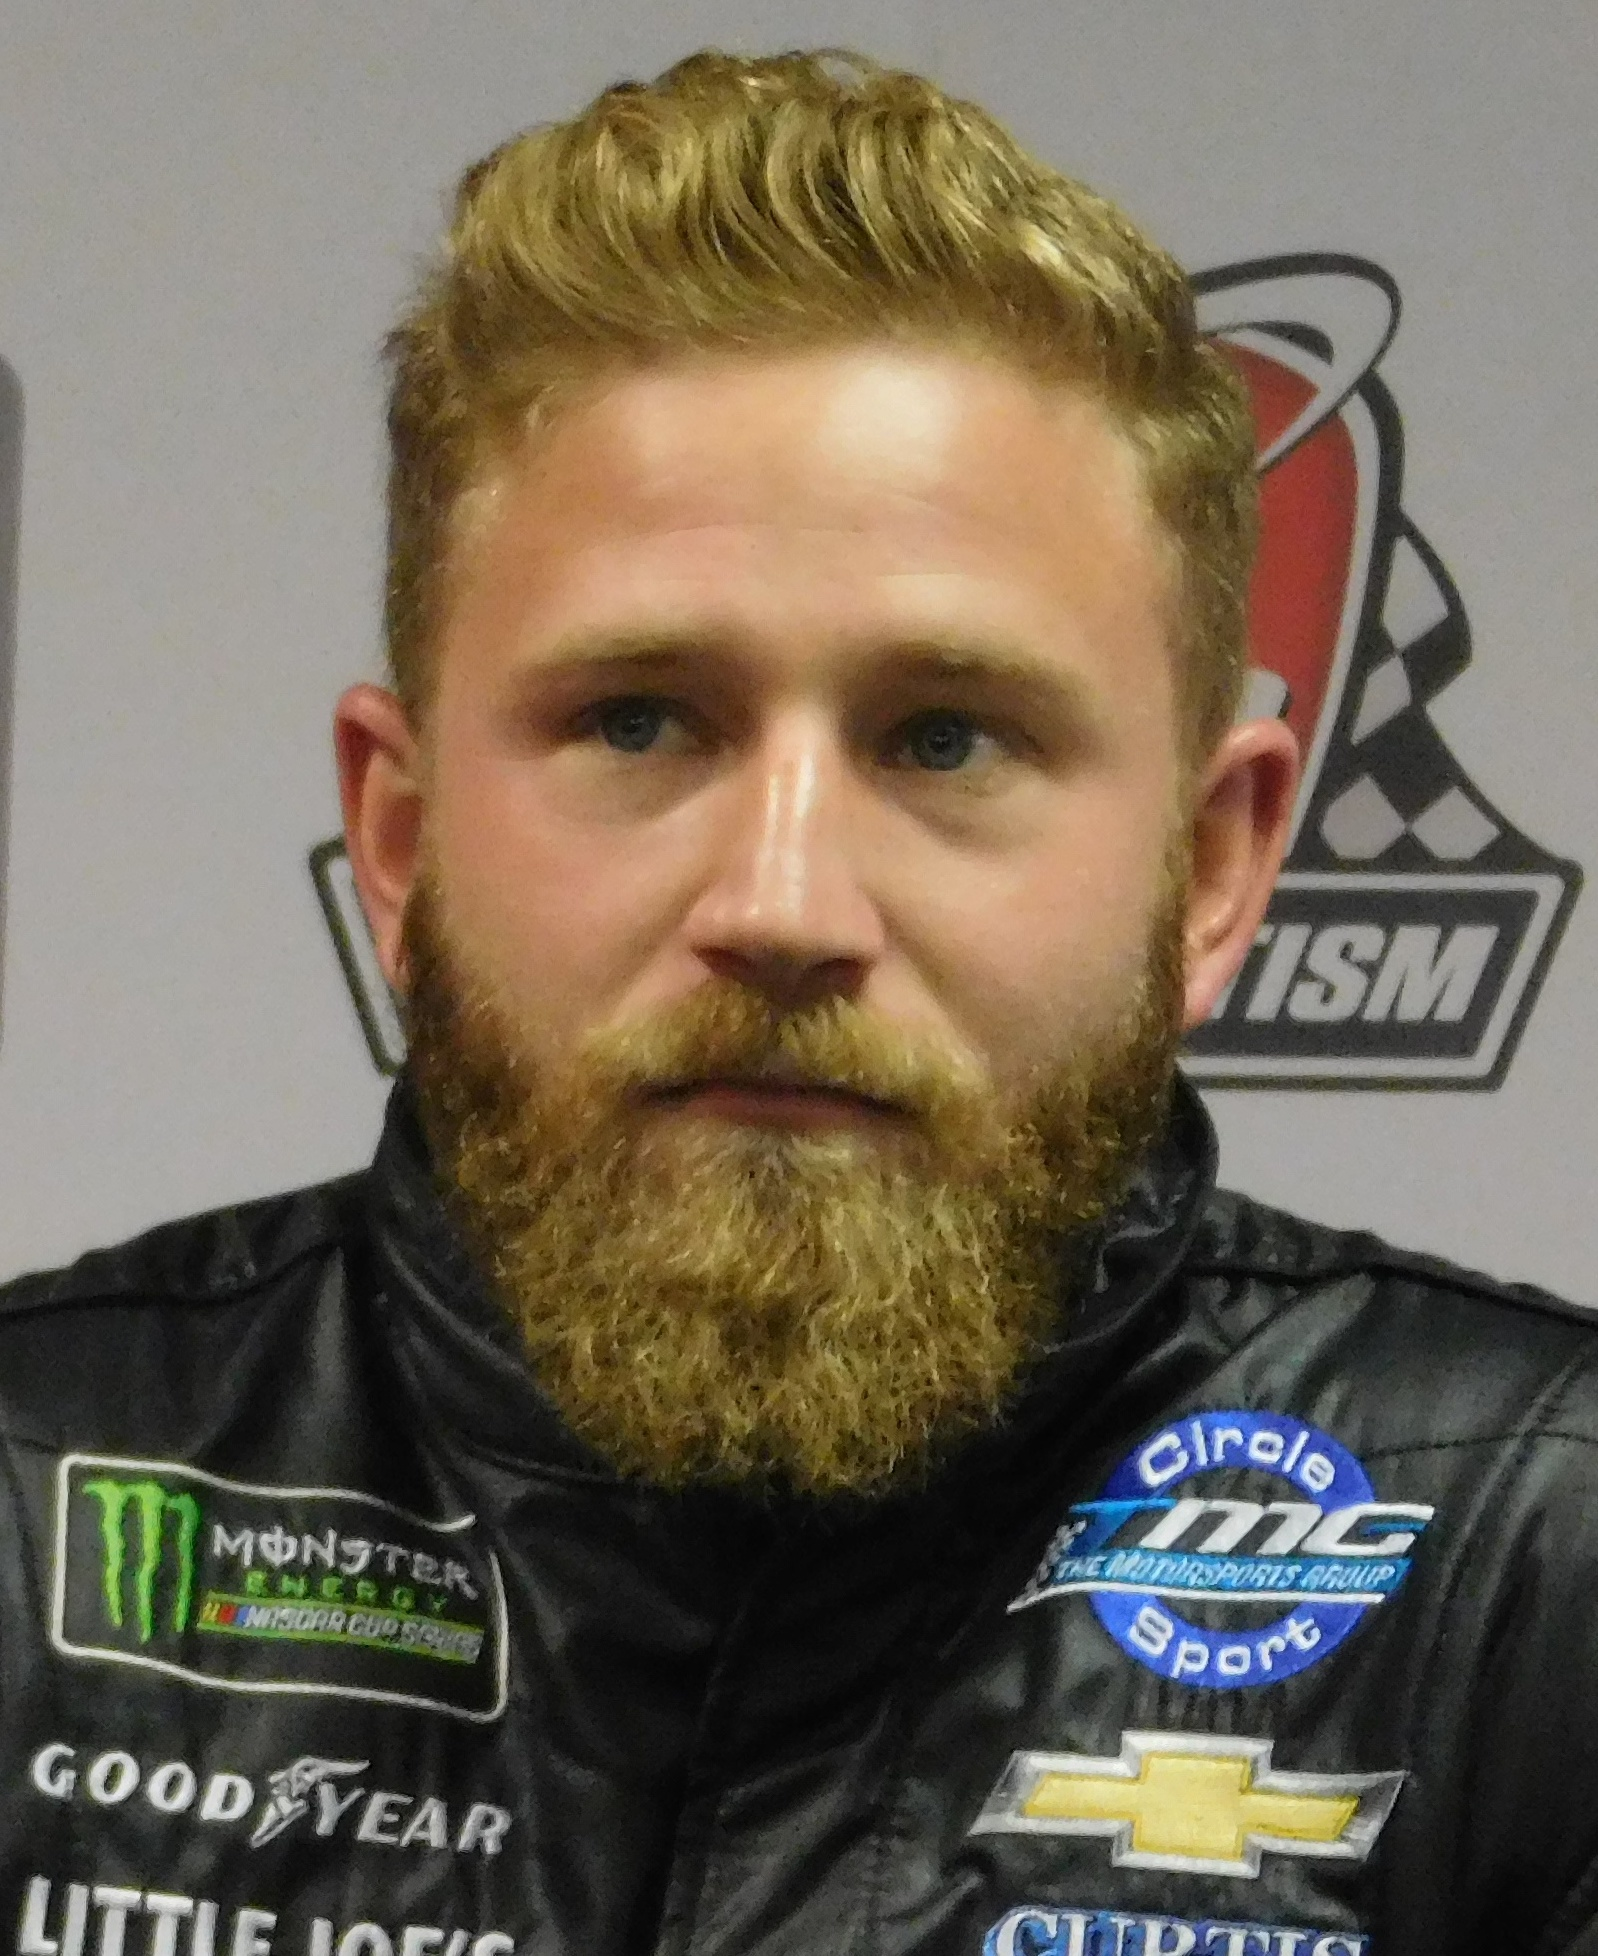 Jeffrey Earnhardt Wikipedia Genealogy for teresa earnhardt (houston) family tree on geni, with over 200 million profiles of ancestors and living relatives. jeffrey earnhardt wikipedia